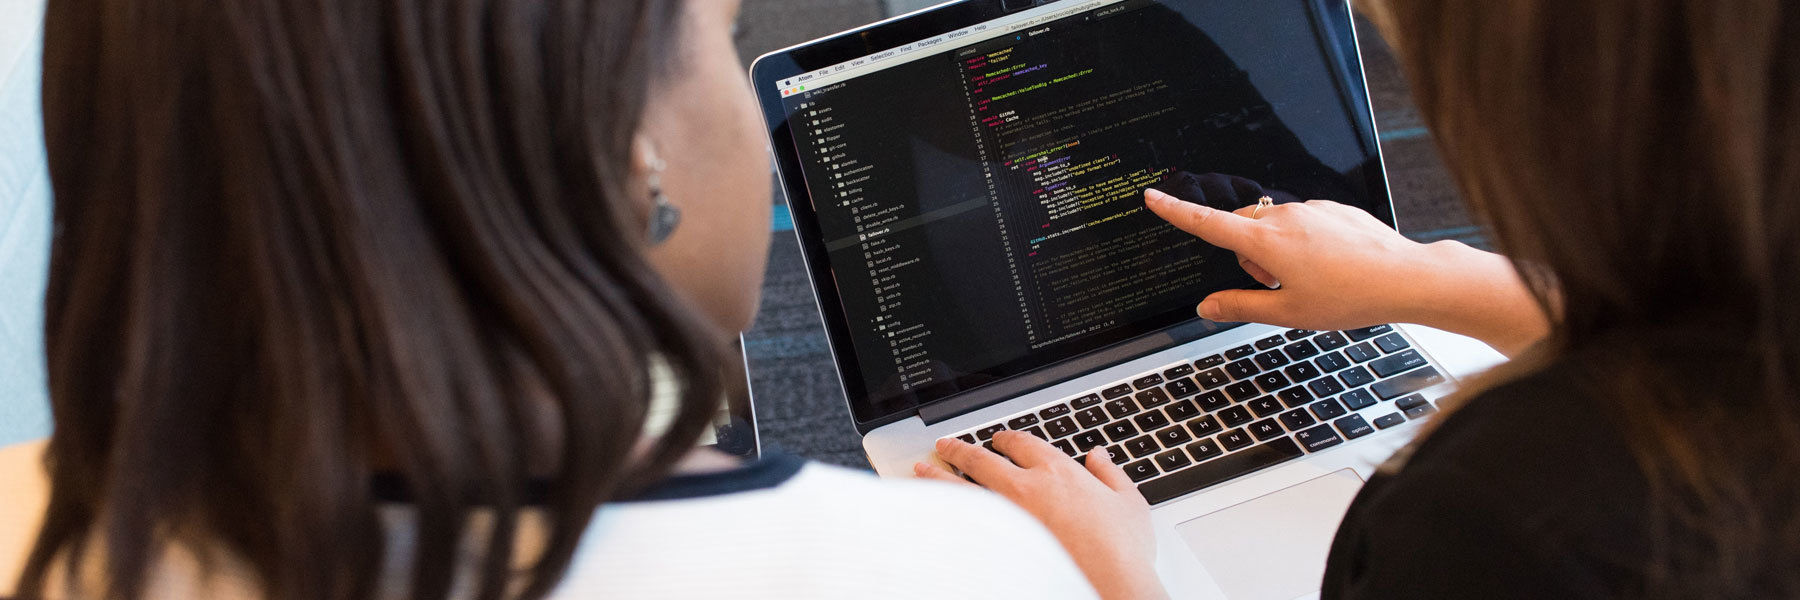 top 5 modern programming languages to learn in 2020